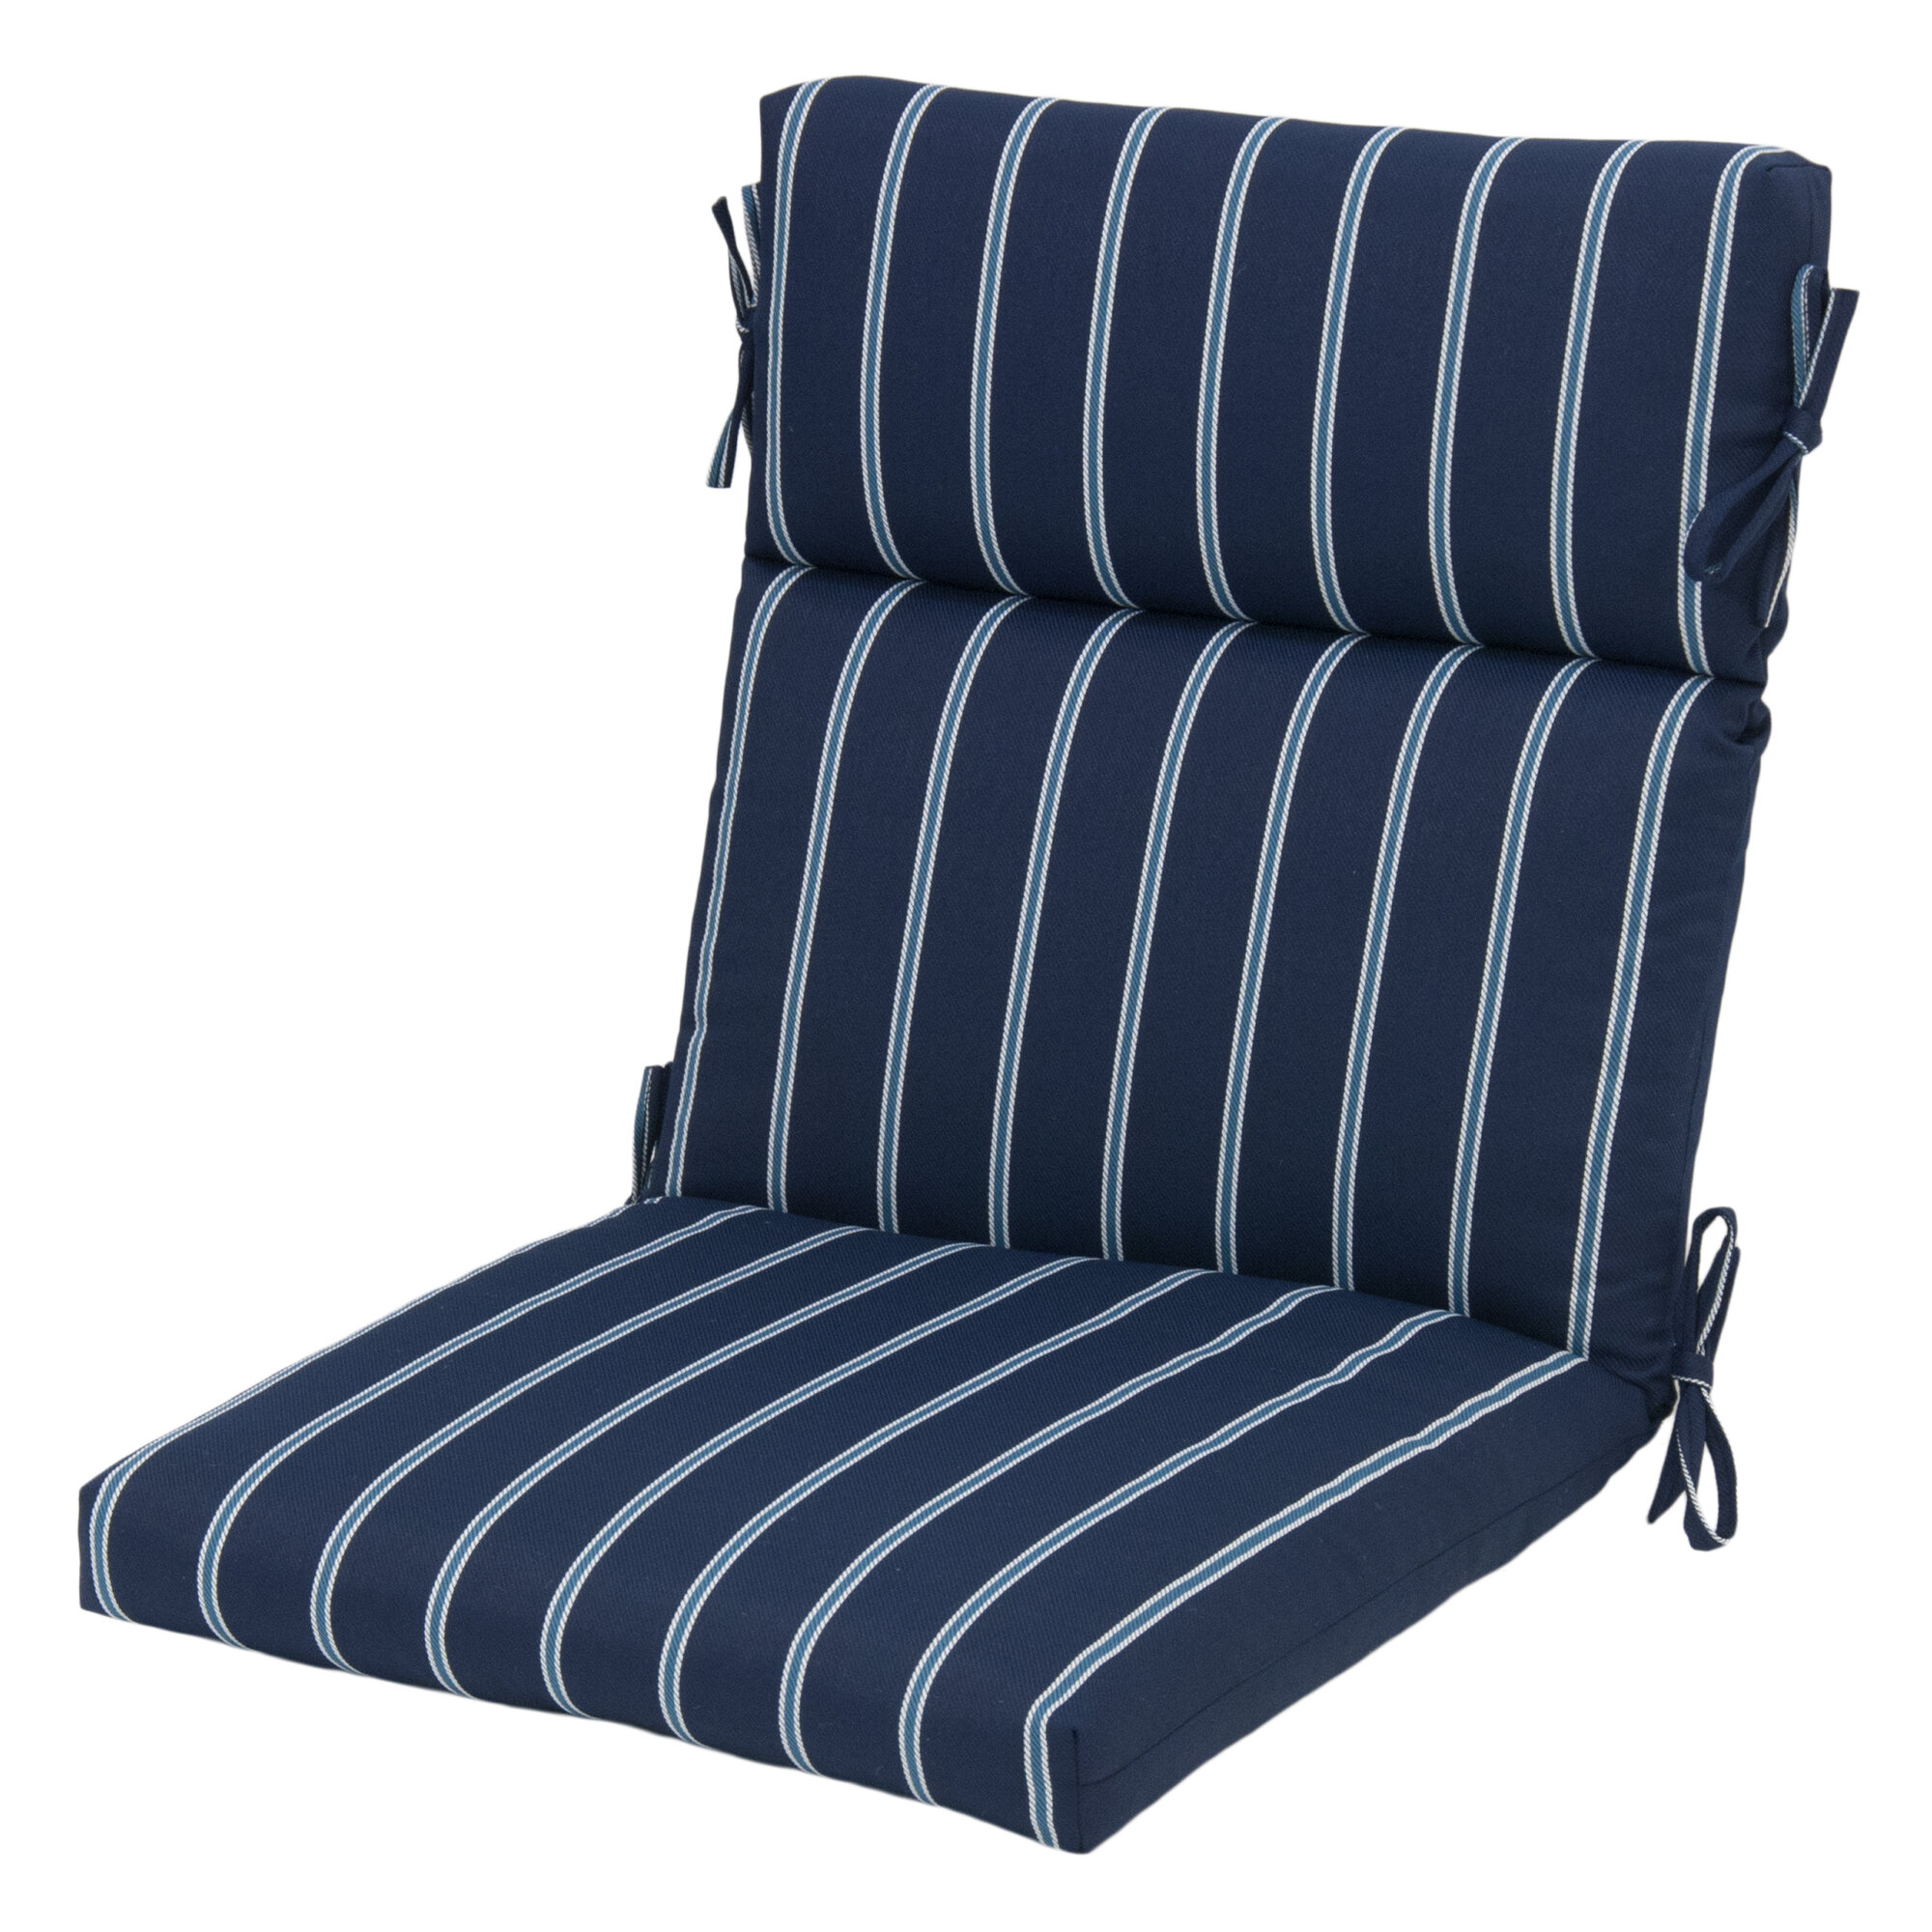 Plantation Patterns Outdoor Dining Chair Cushion | eBay